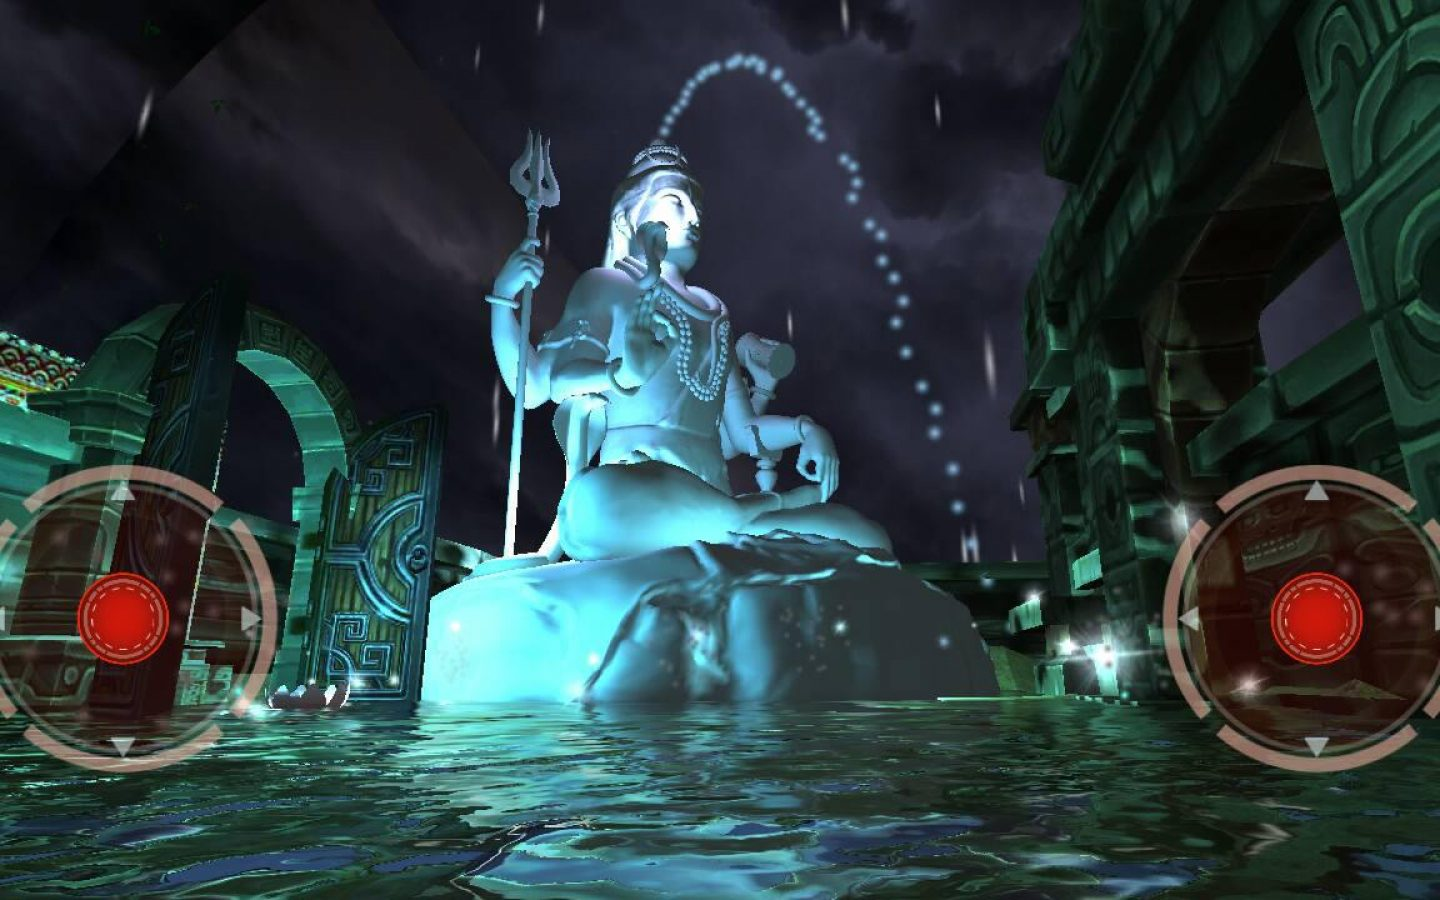 bholenath wallpaper 3d